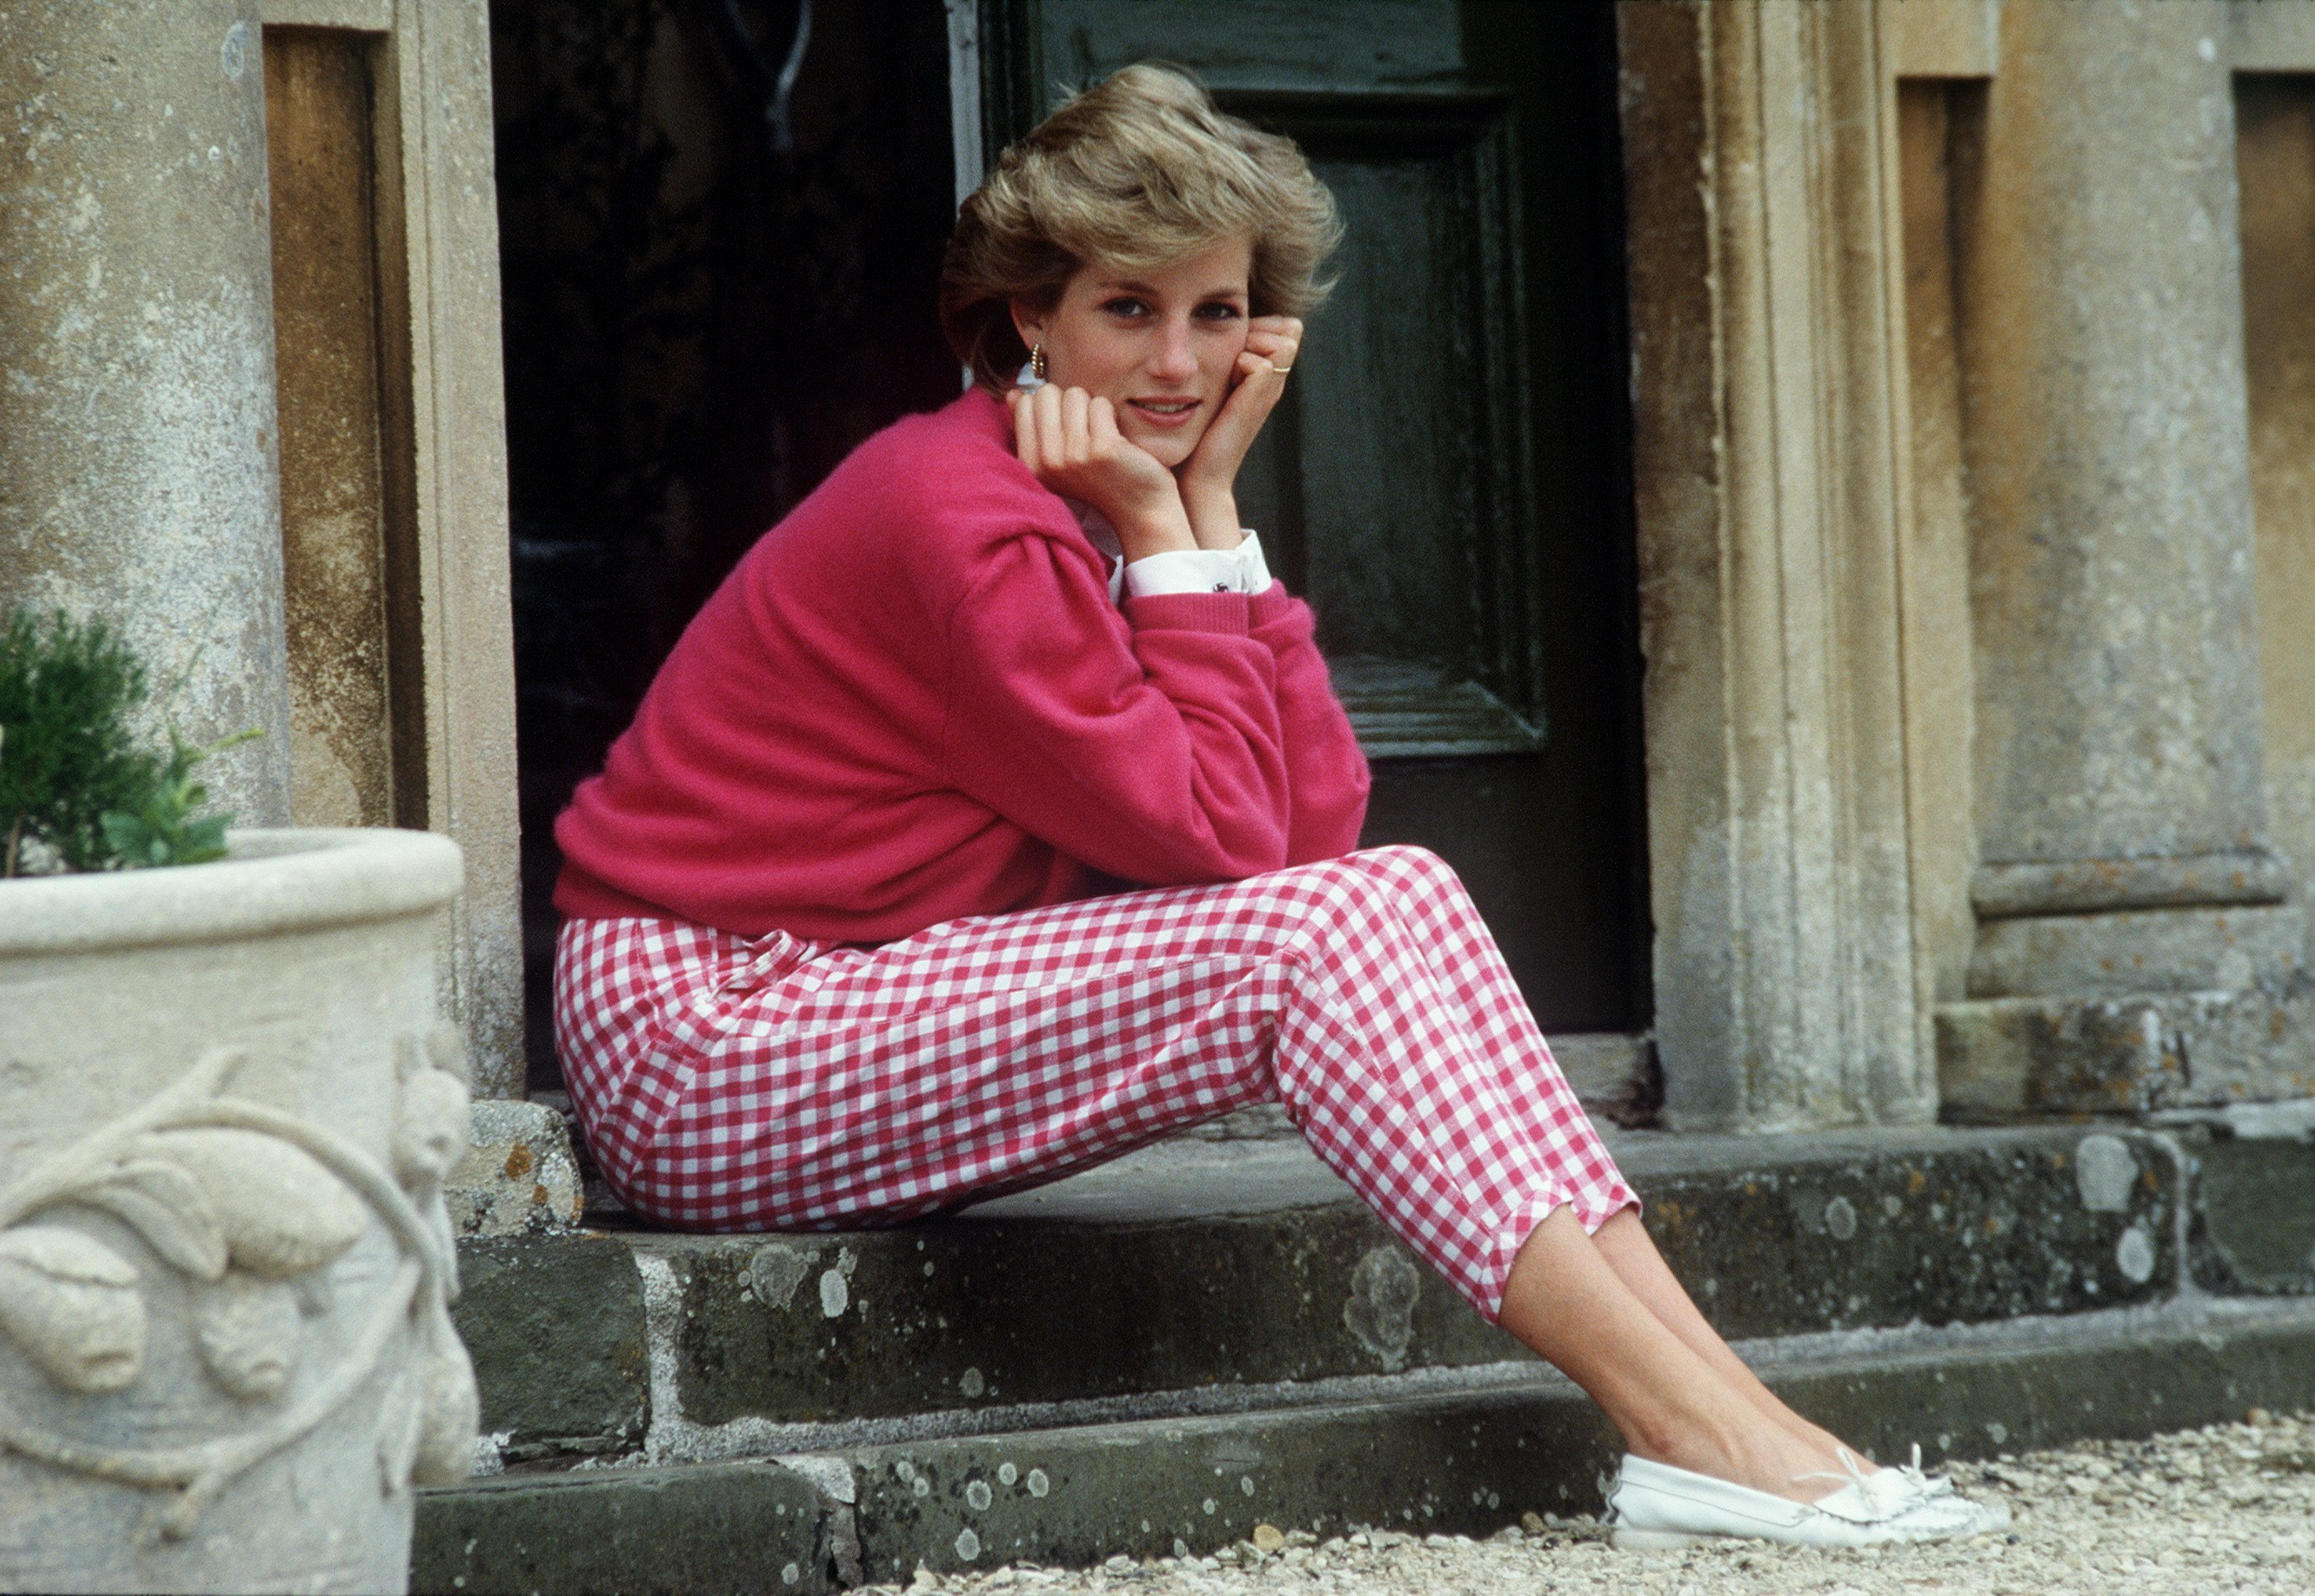 Princess Diana on the steps of her home at Highgrove, Gloucestershire on July 18, 1986 | Photo: Getty Images